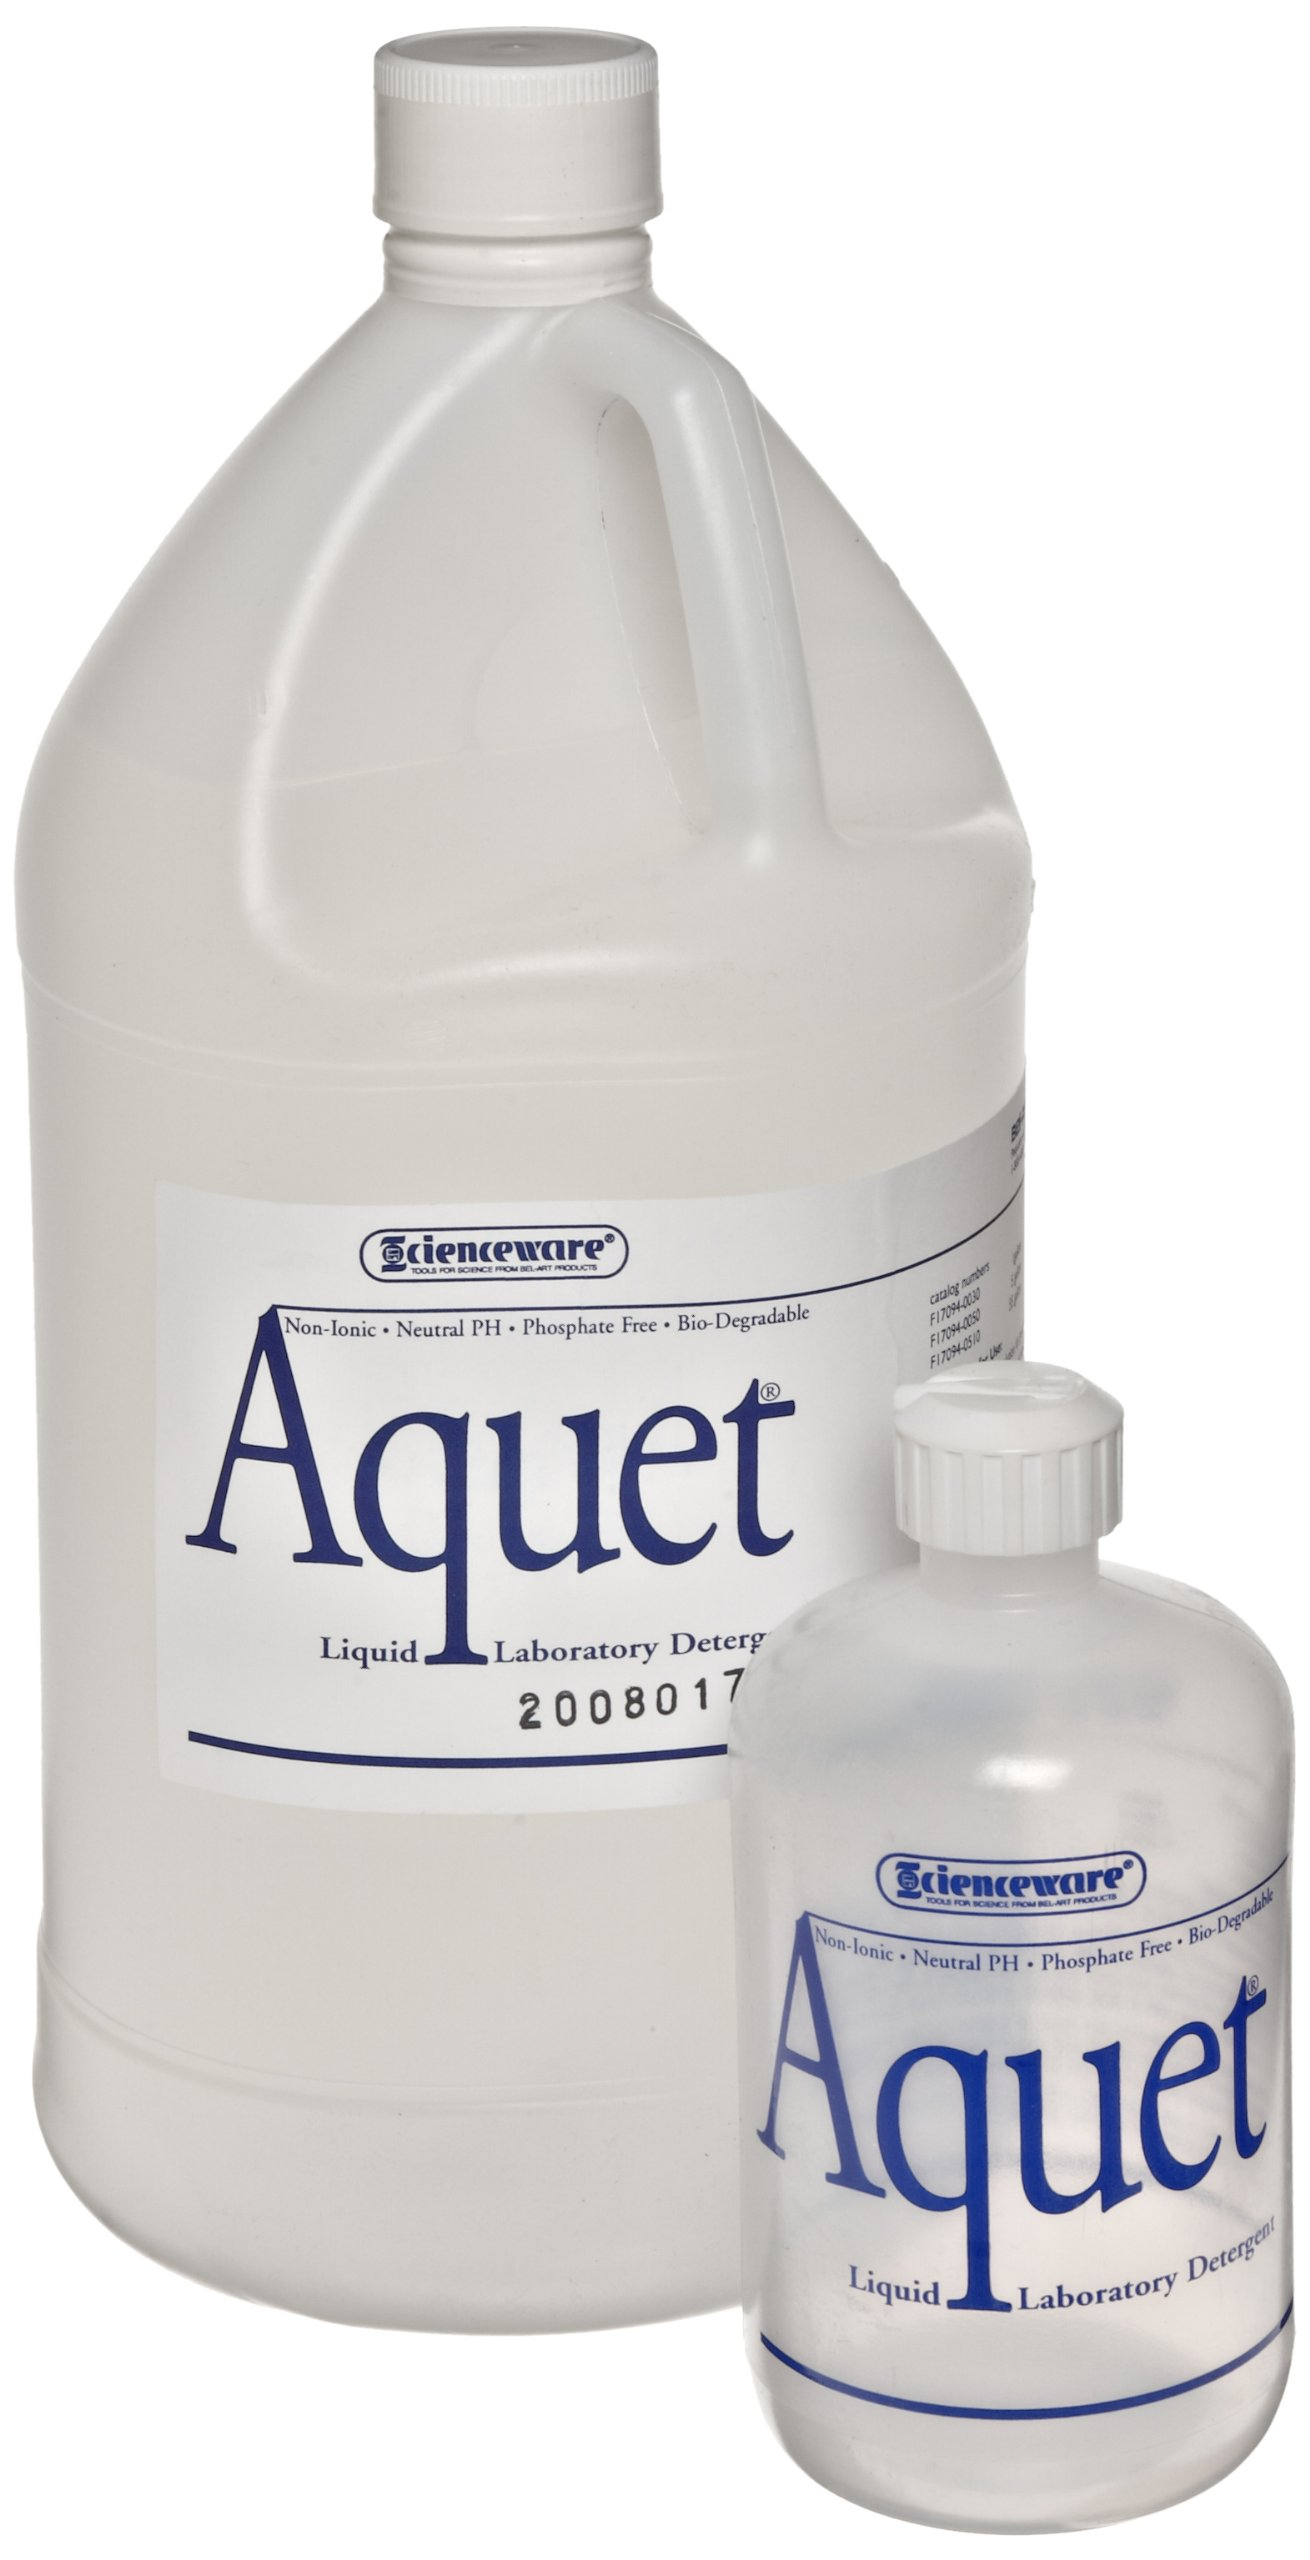 Bel-Art Aquet Detergent for Glassware and Plastics; 1 Gallon Bottle (F17094-0030)